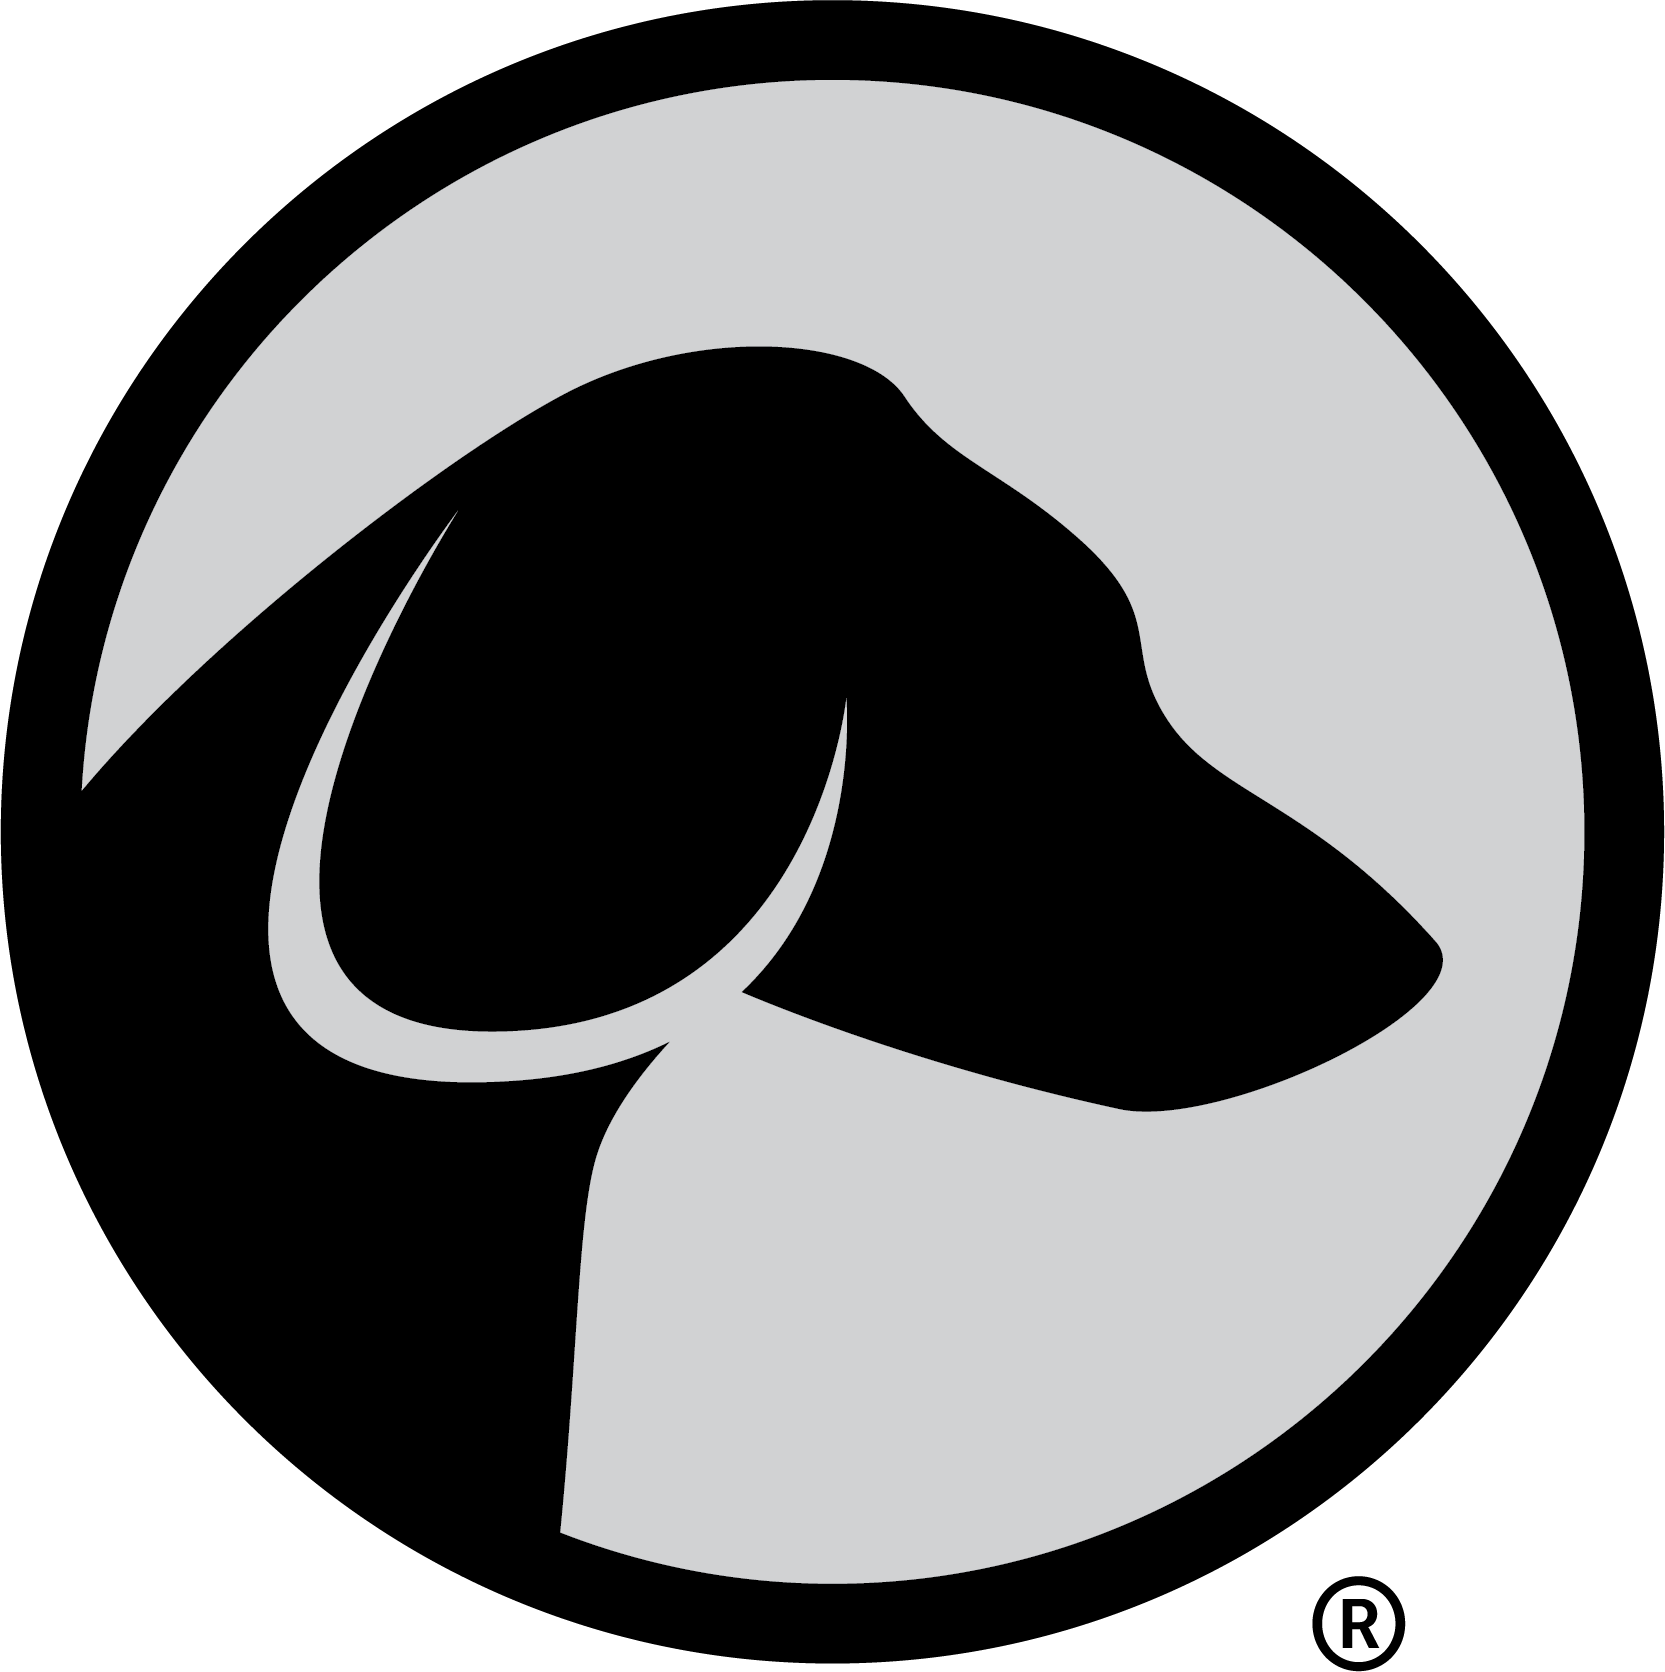 HoundLabs_Logo-Mark_Grayscale